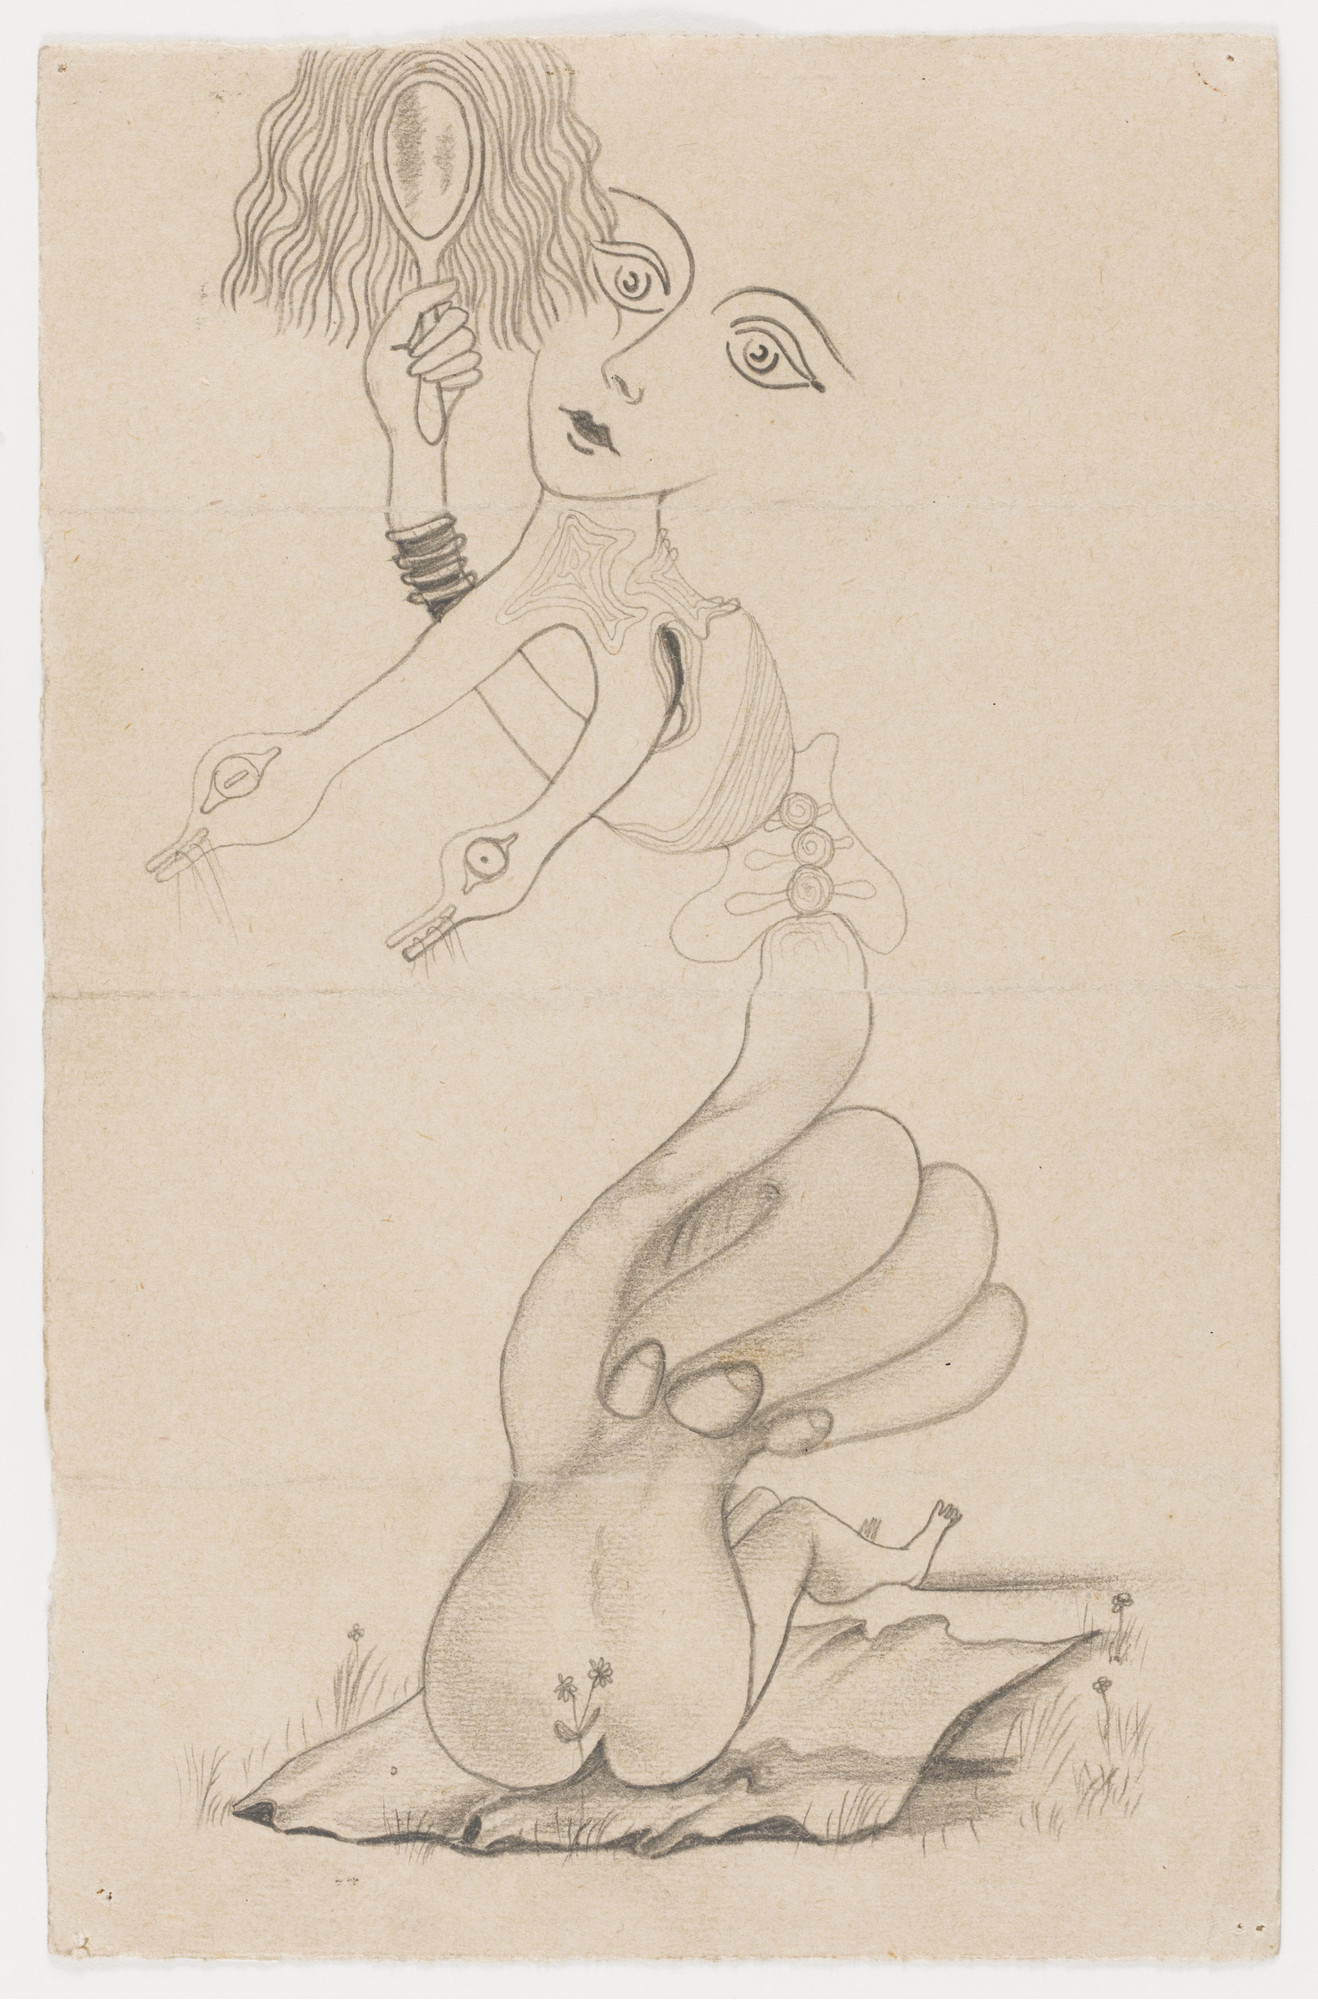 Cadavre Exquis, André Breton, Jacques Hérold, Yves Tanguy, Victor Brauner. Figure. 1934